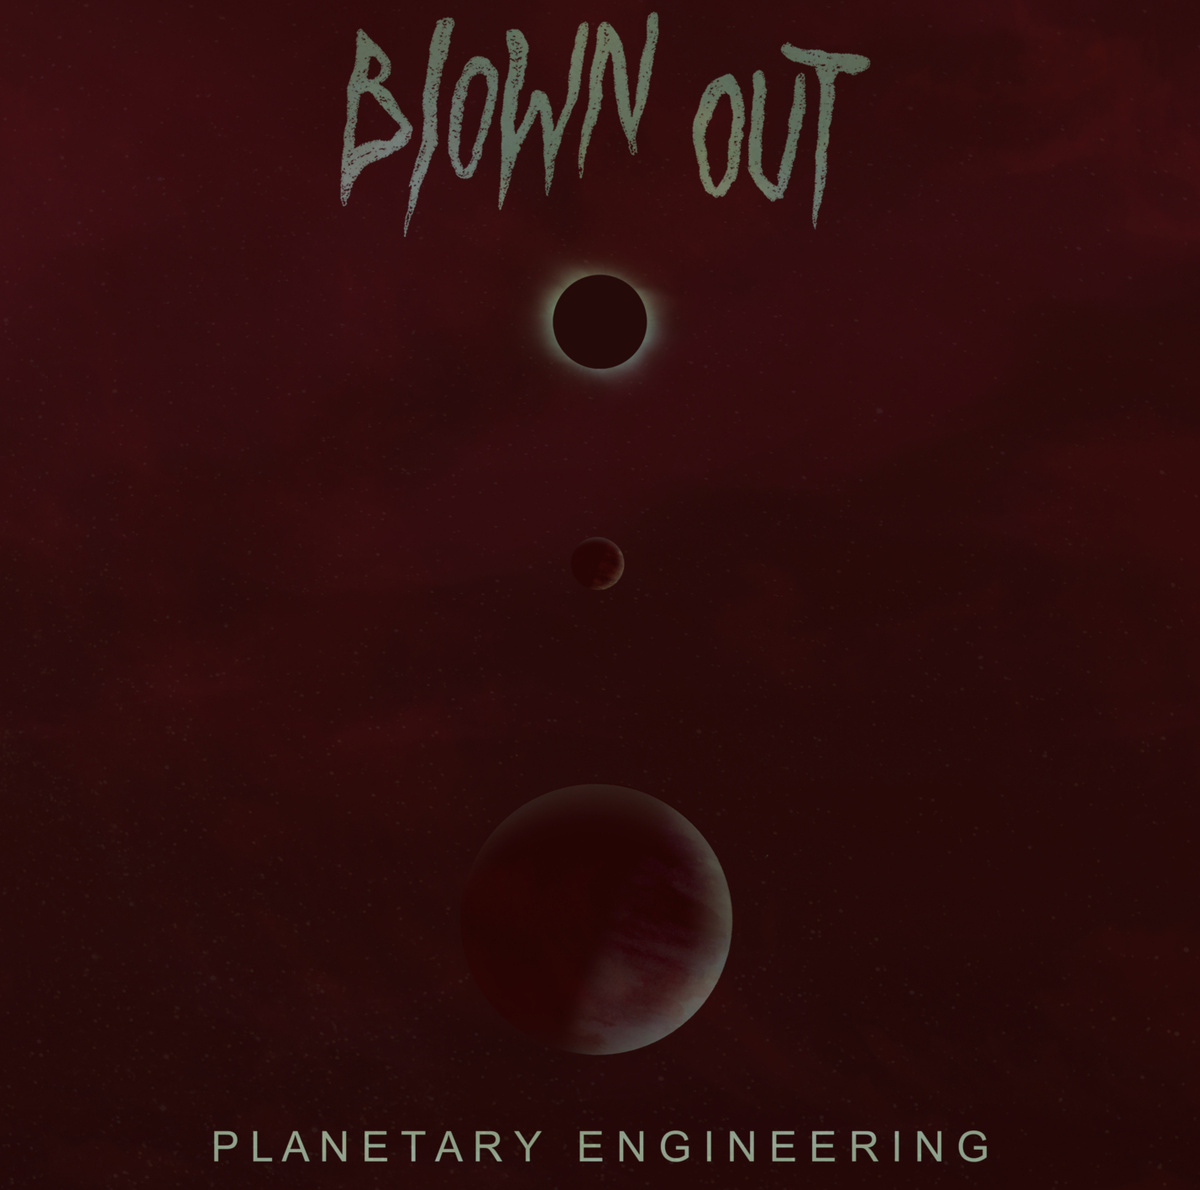 blown_out_planetary_engineering.jpg